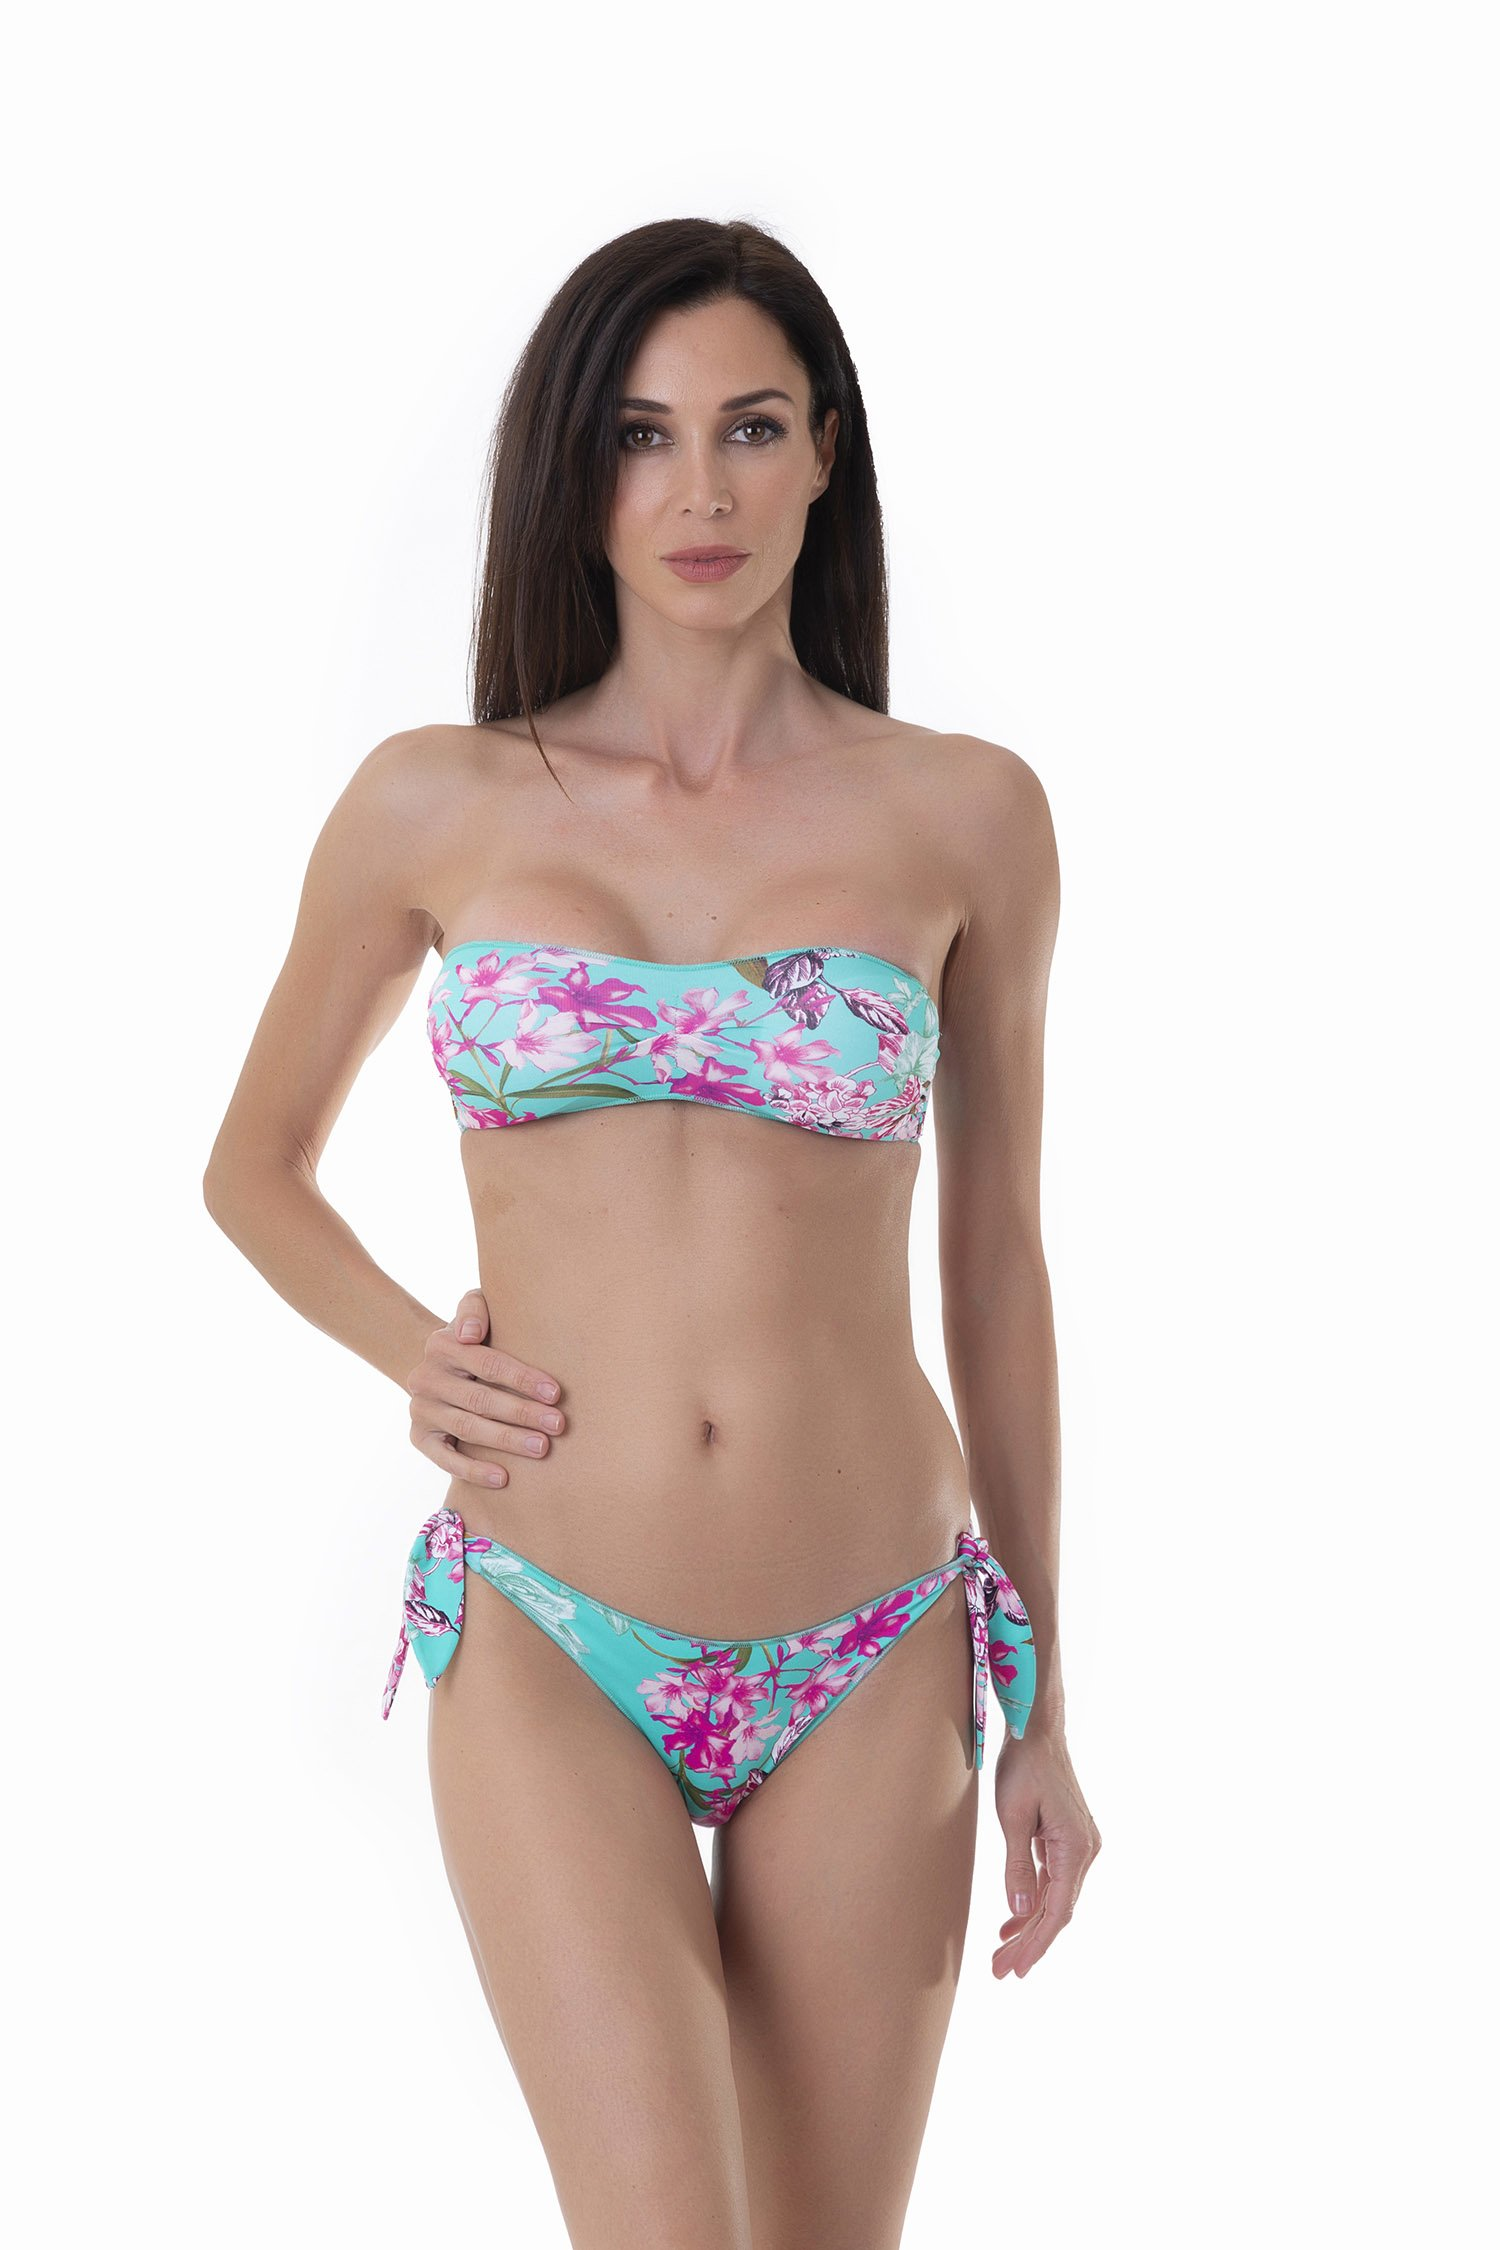 PRINTED BASIC BANDEAU BIKINI BOTTOM WITH KNOTTED STRAPS - Fiori Azzurro